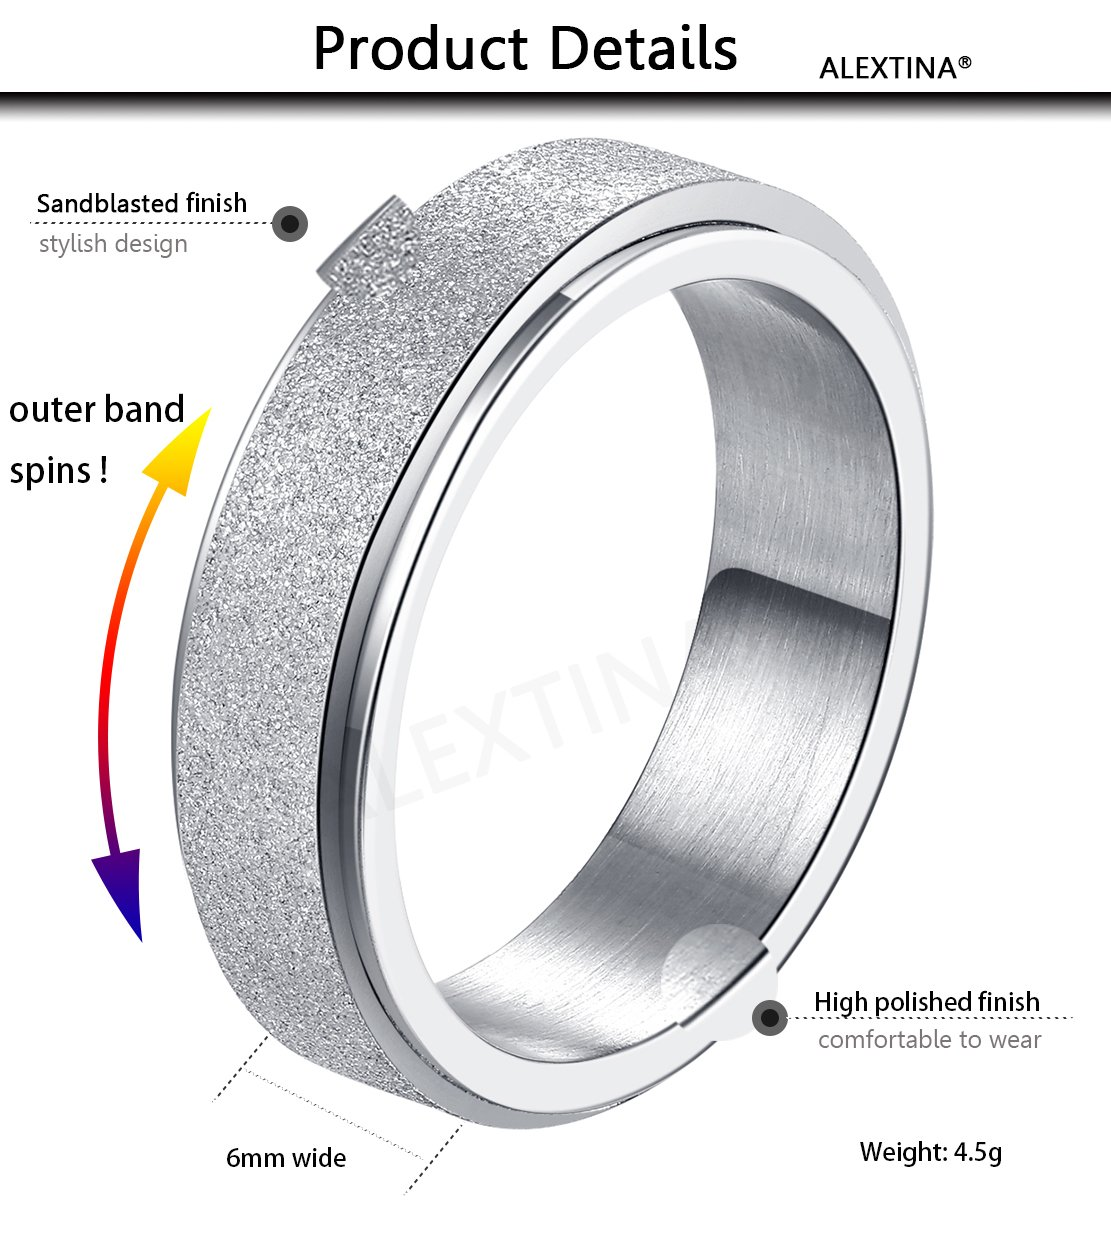 ALEXTINA Women's 6MM Silver Stainless Steel Spinner Ring Sand Blast Finish Comfort Fit Size 9 by ALEXTINA (Image #2)